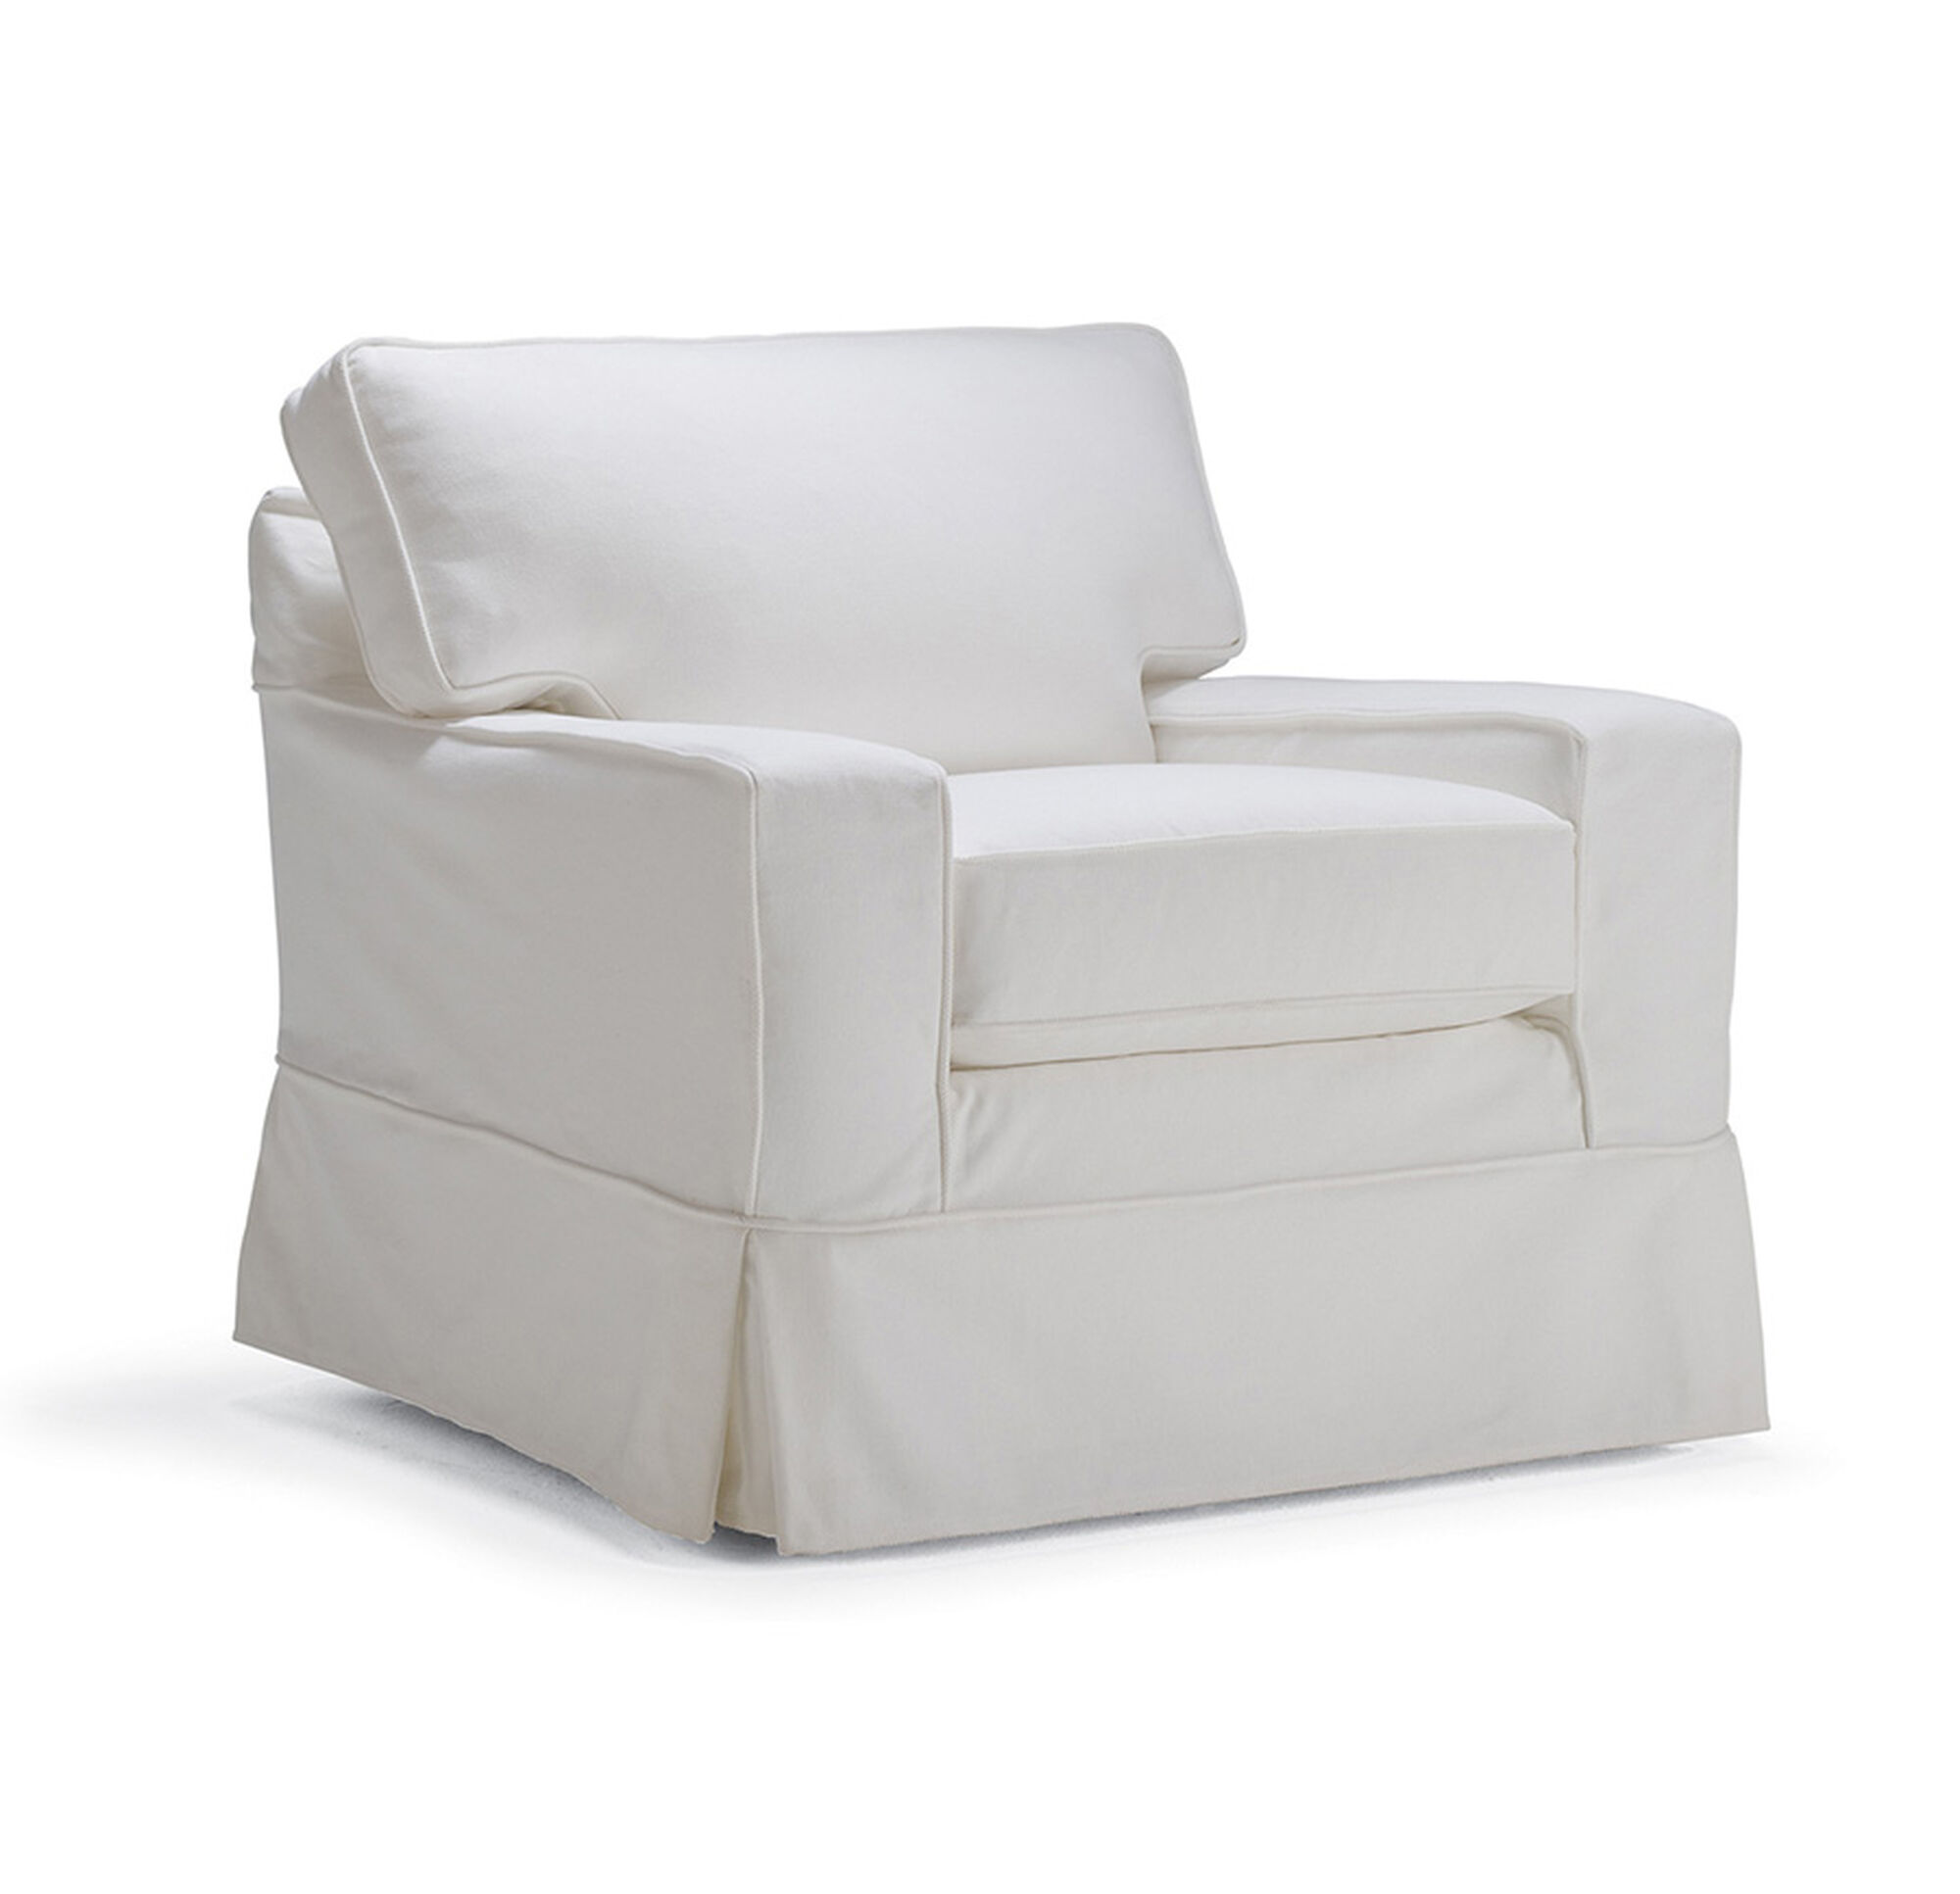 ALEX II SWIVEL GLIDER CHAIR SLIPCOVER